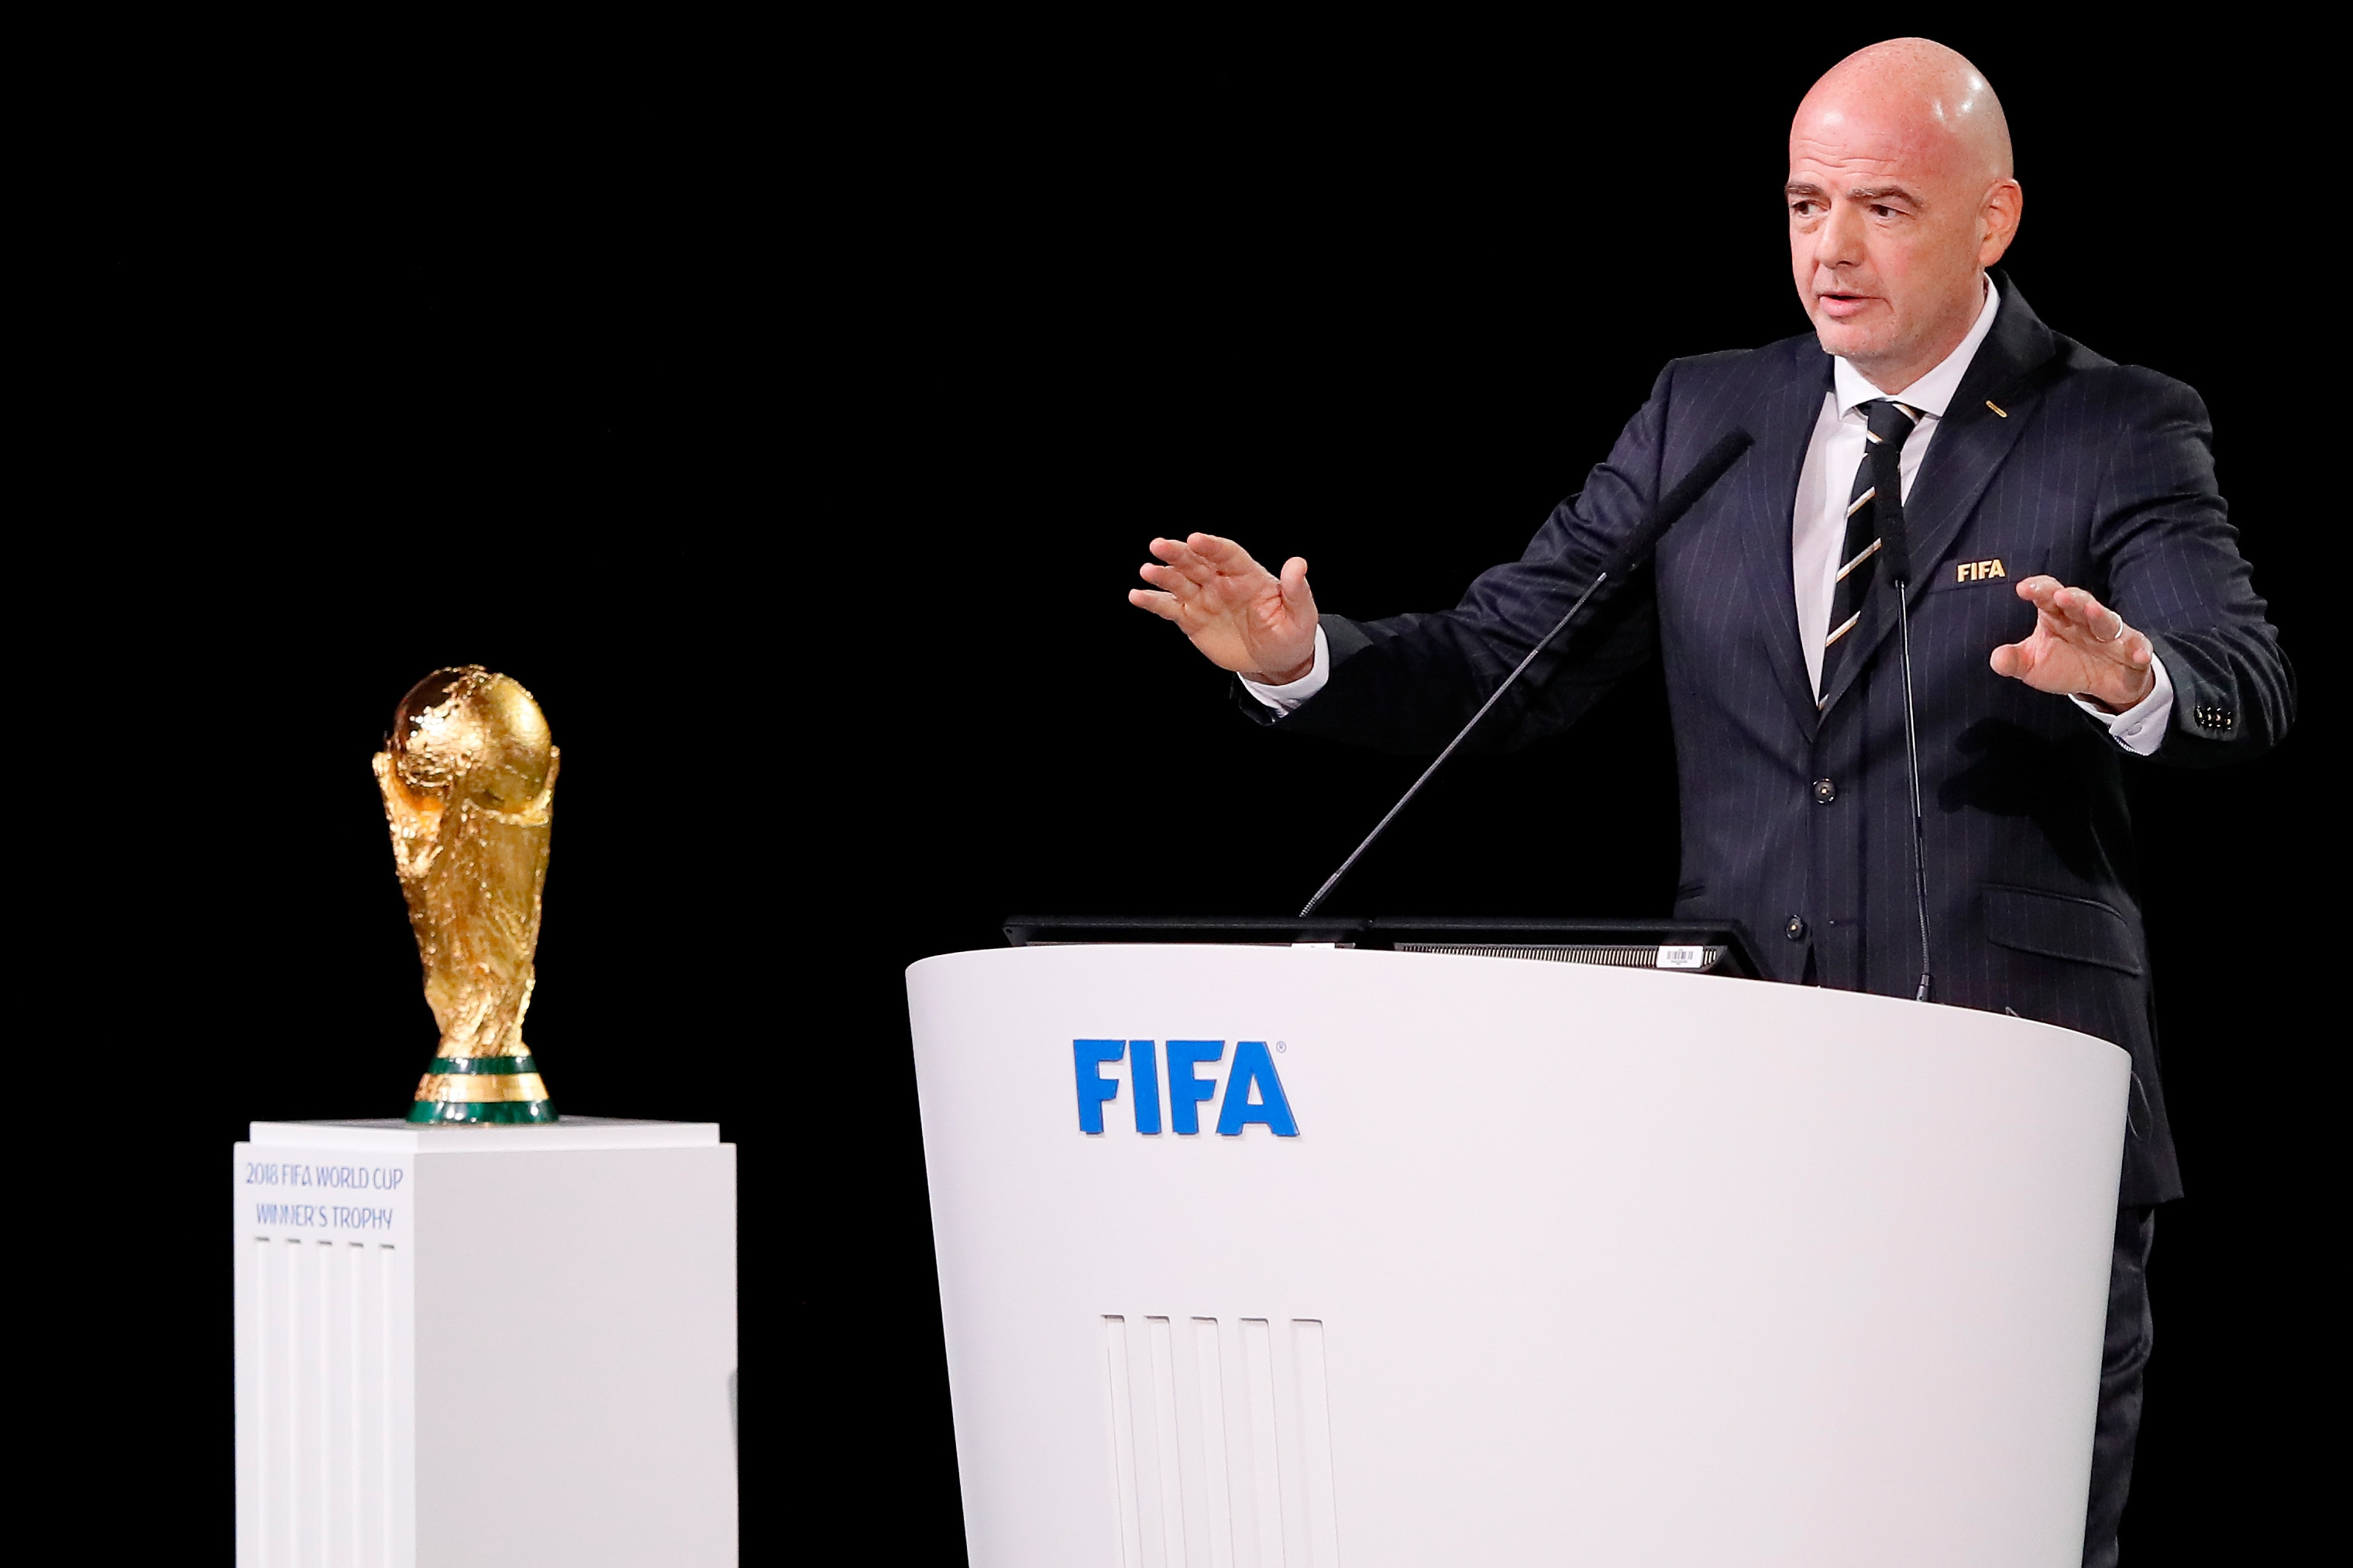 FIFA President Gianni Infantino speaks during the 68th FIFA Congress  (Kevin C. Cox/Getty Images)